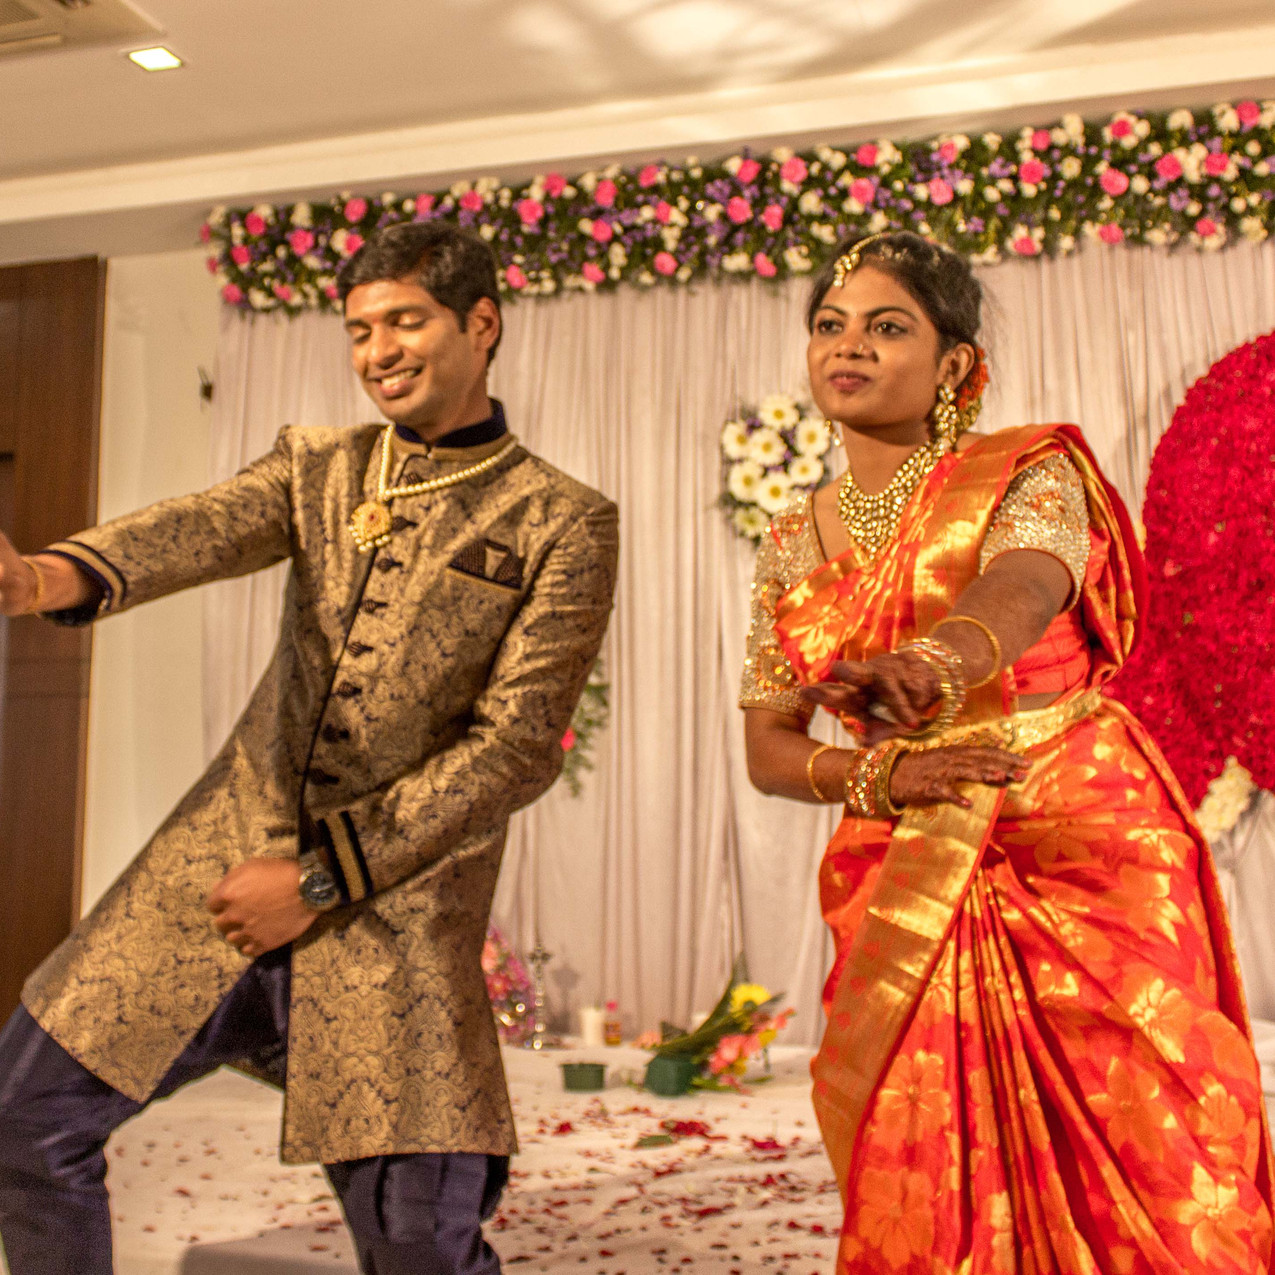 Fairytale Studios_Akshata-Sandeep Engagement_26-Dec-2016_Post Ceremony_76